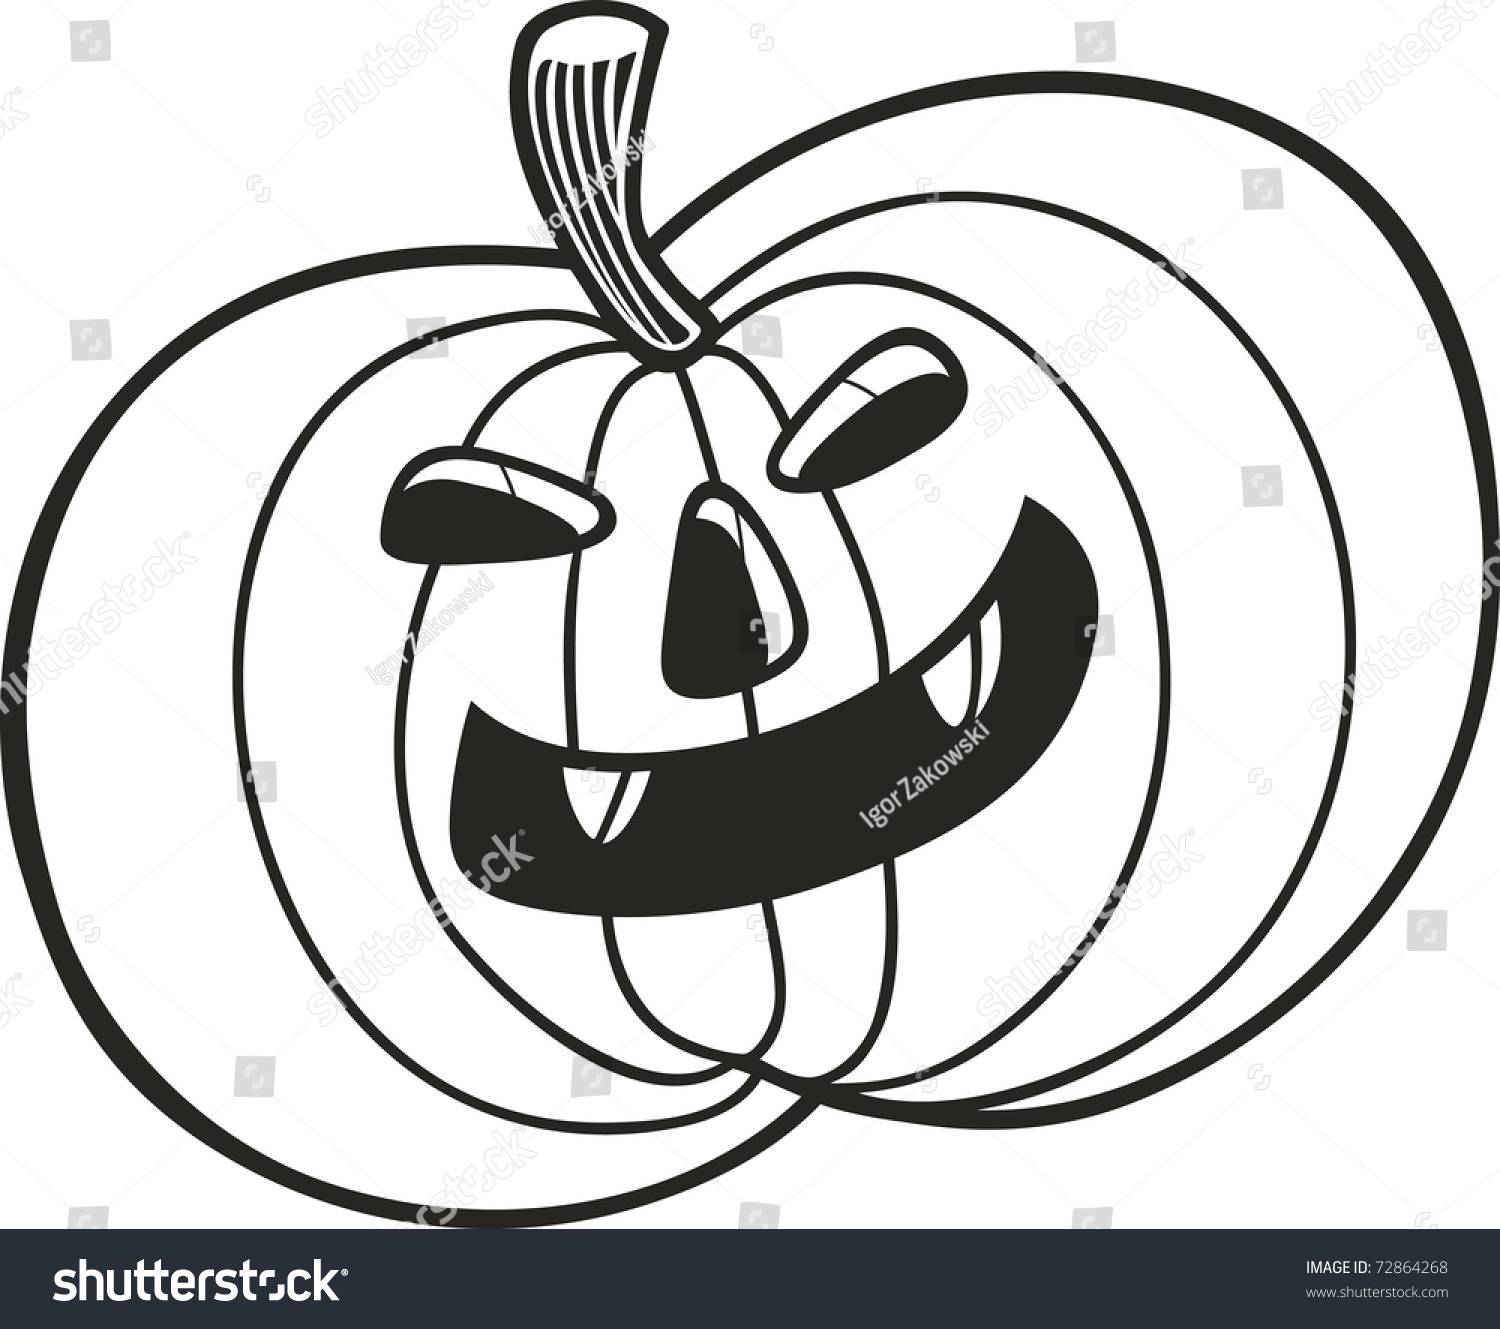 halloween pumpkin for coloring book stock vector illustration 72864268